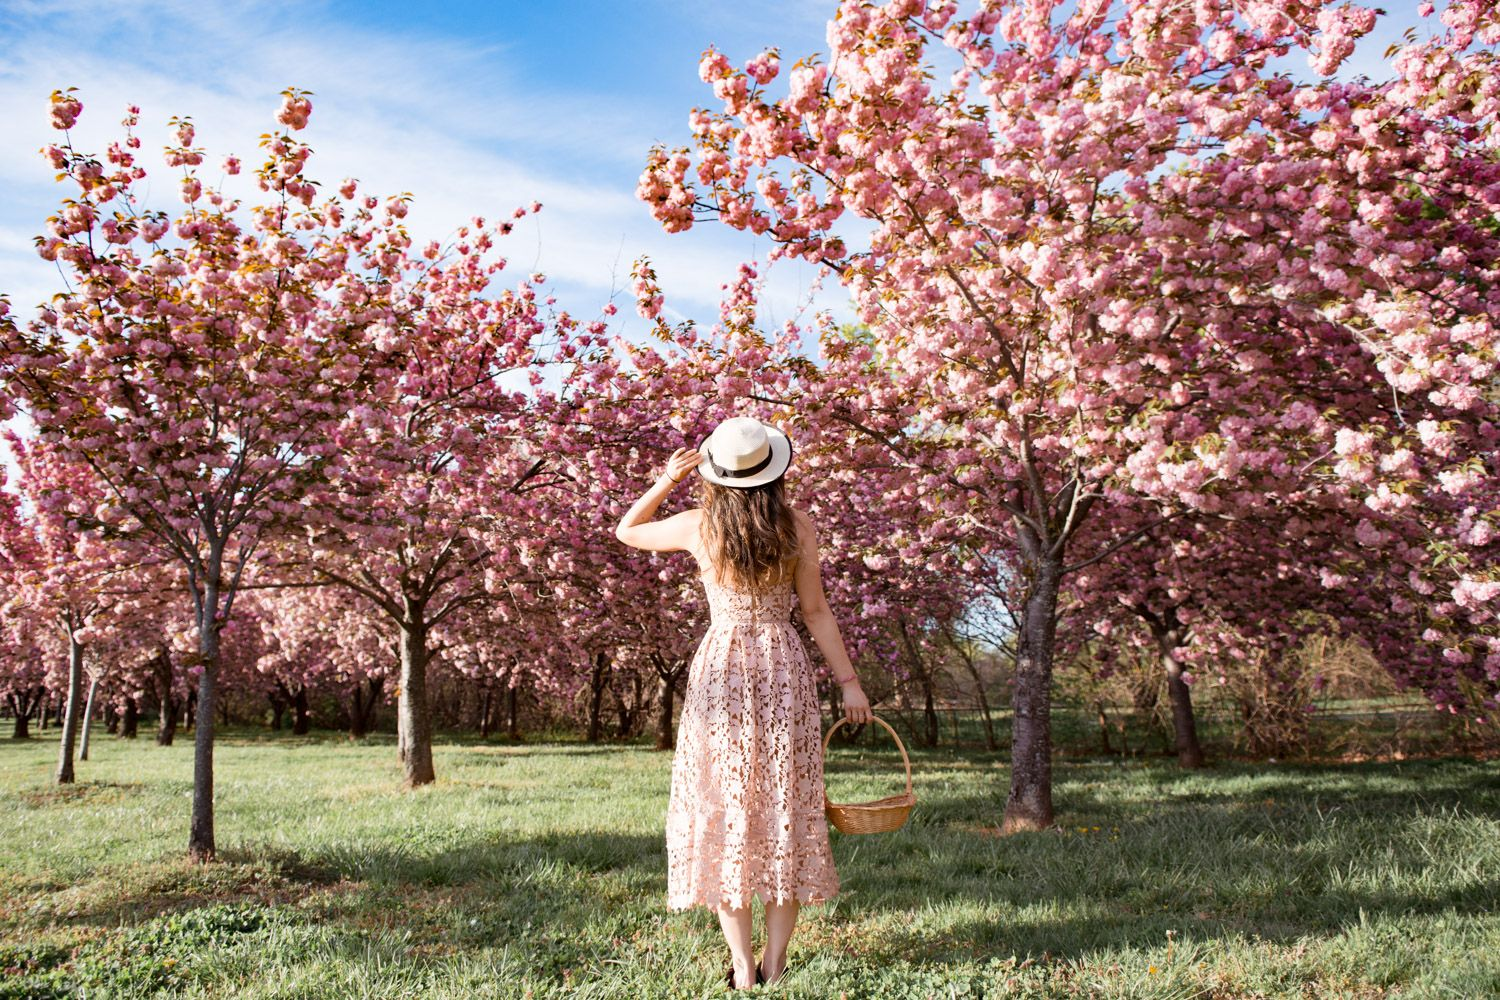 5 Secret Places To See Cherry Blossoms In Dc That Are Tourist Free 2021 Cherry Blossom Dc Cherry Blossom Washington Dc Fall Foliage